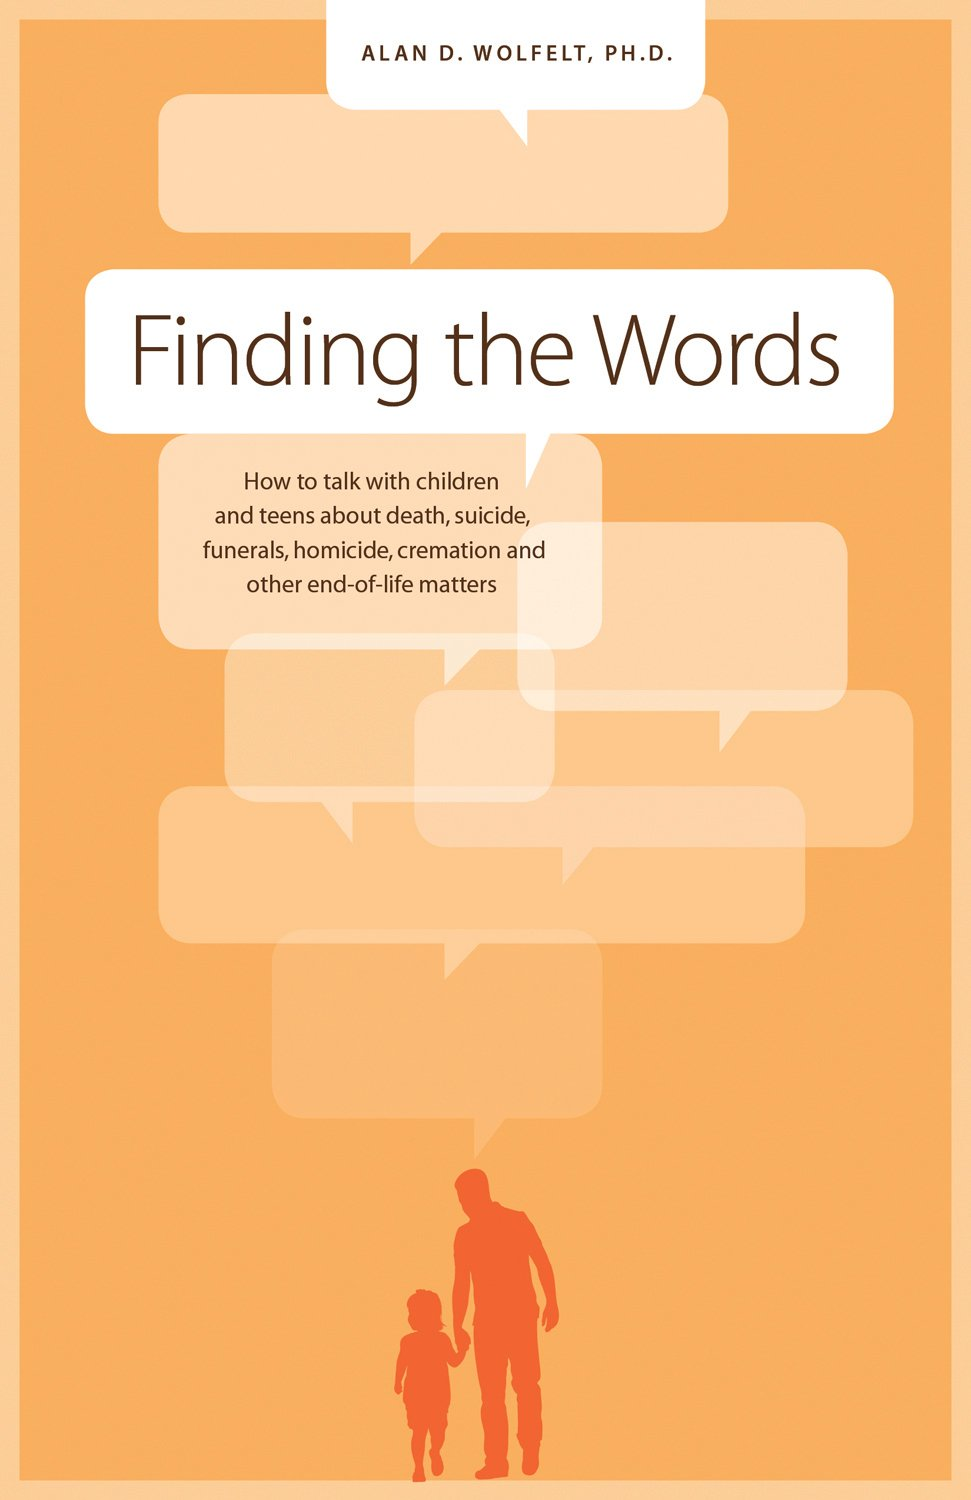 Finding the Words: How to talk with children and teens about death,  suicide, funerals, homicide, cremation, and other end-of-life matters